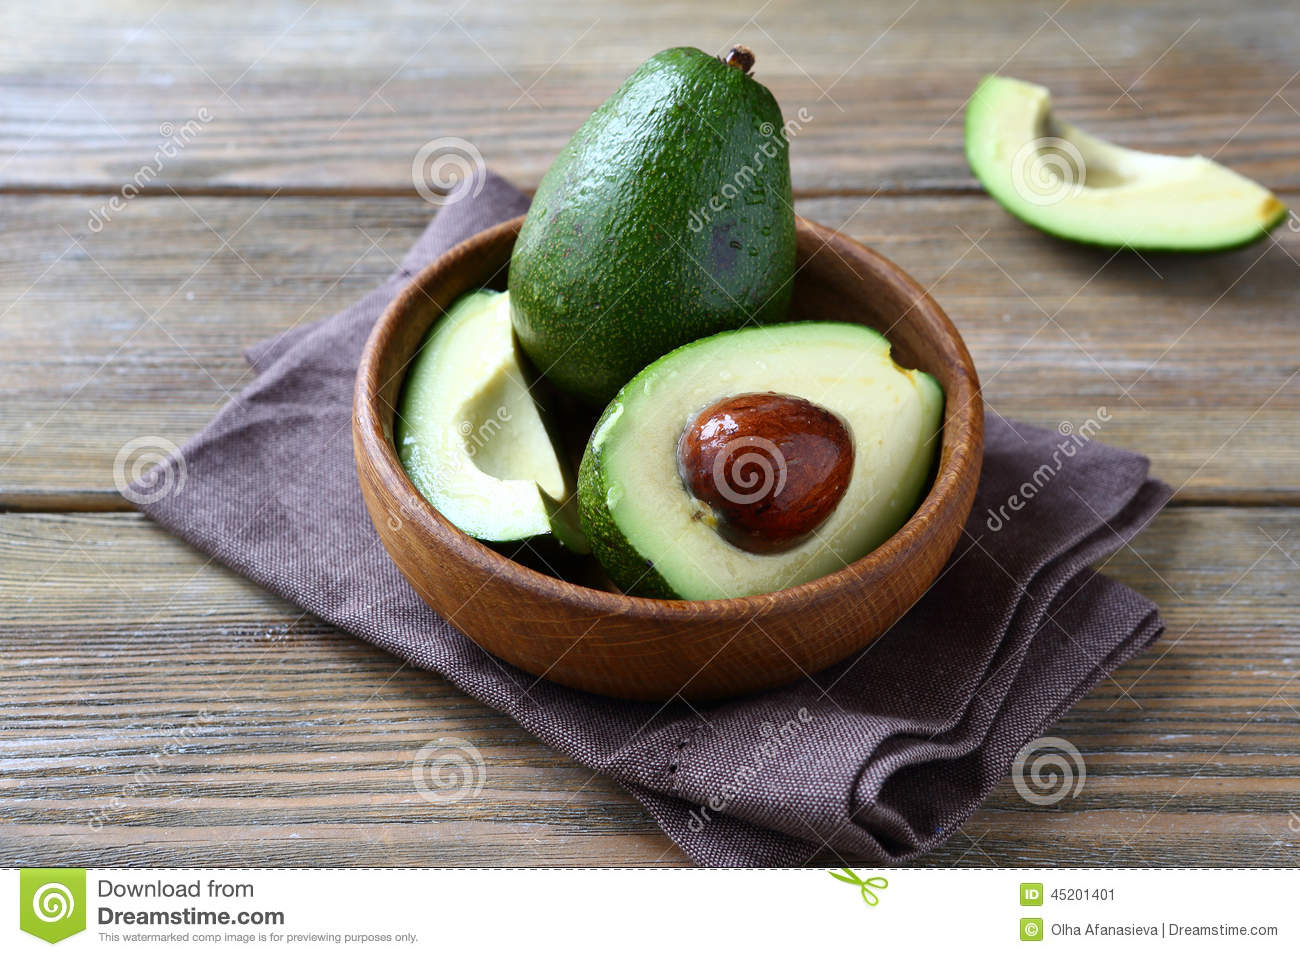 Avocado whole and halves